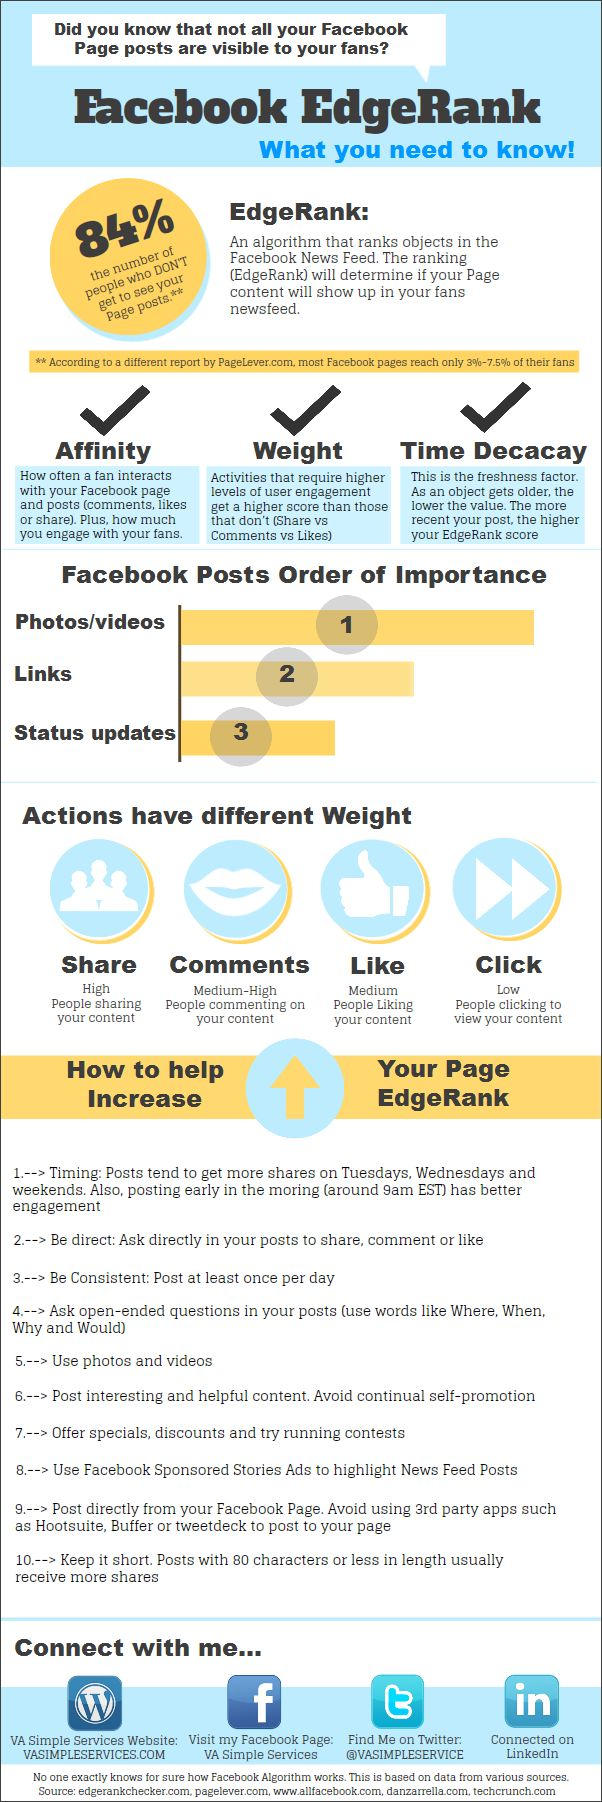 What you should know about Facebook EdgeRank